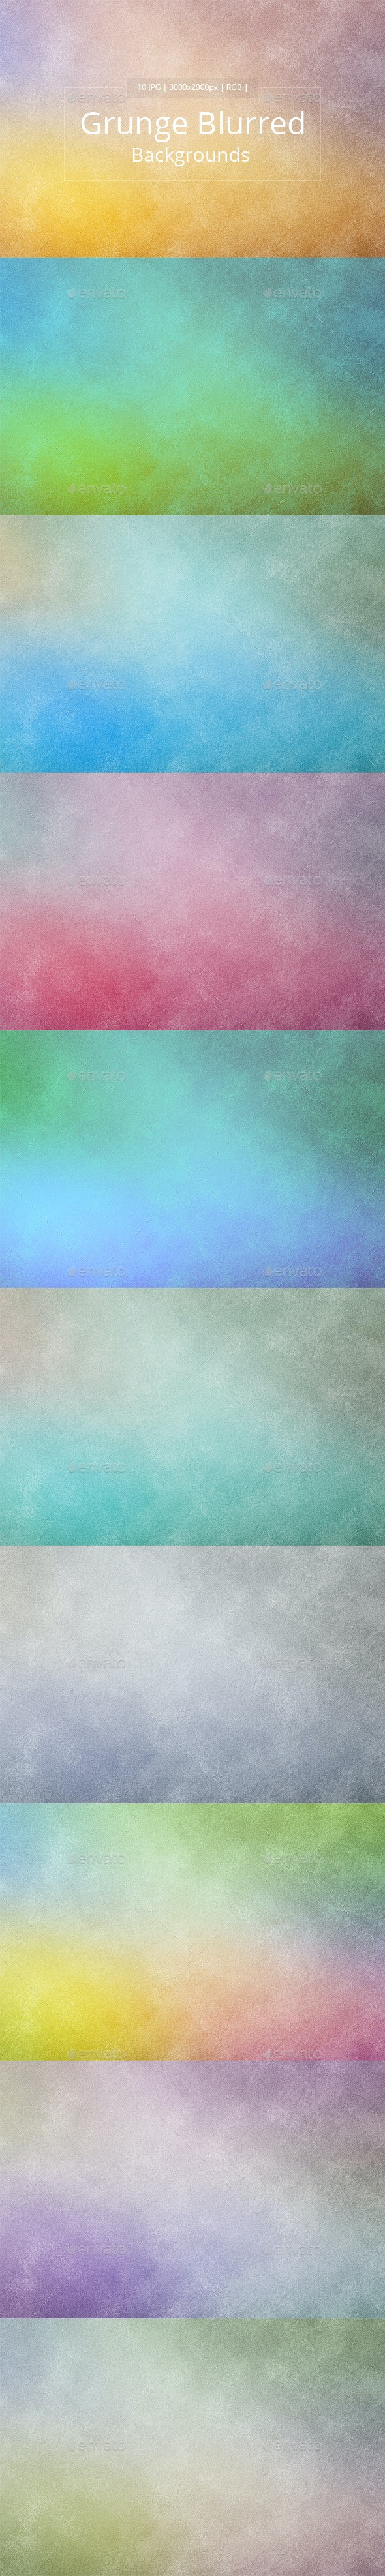 10 Grunge Blurred Backgrounds - Miscellaneous Backgrounds